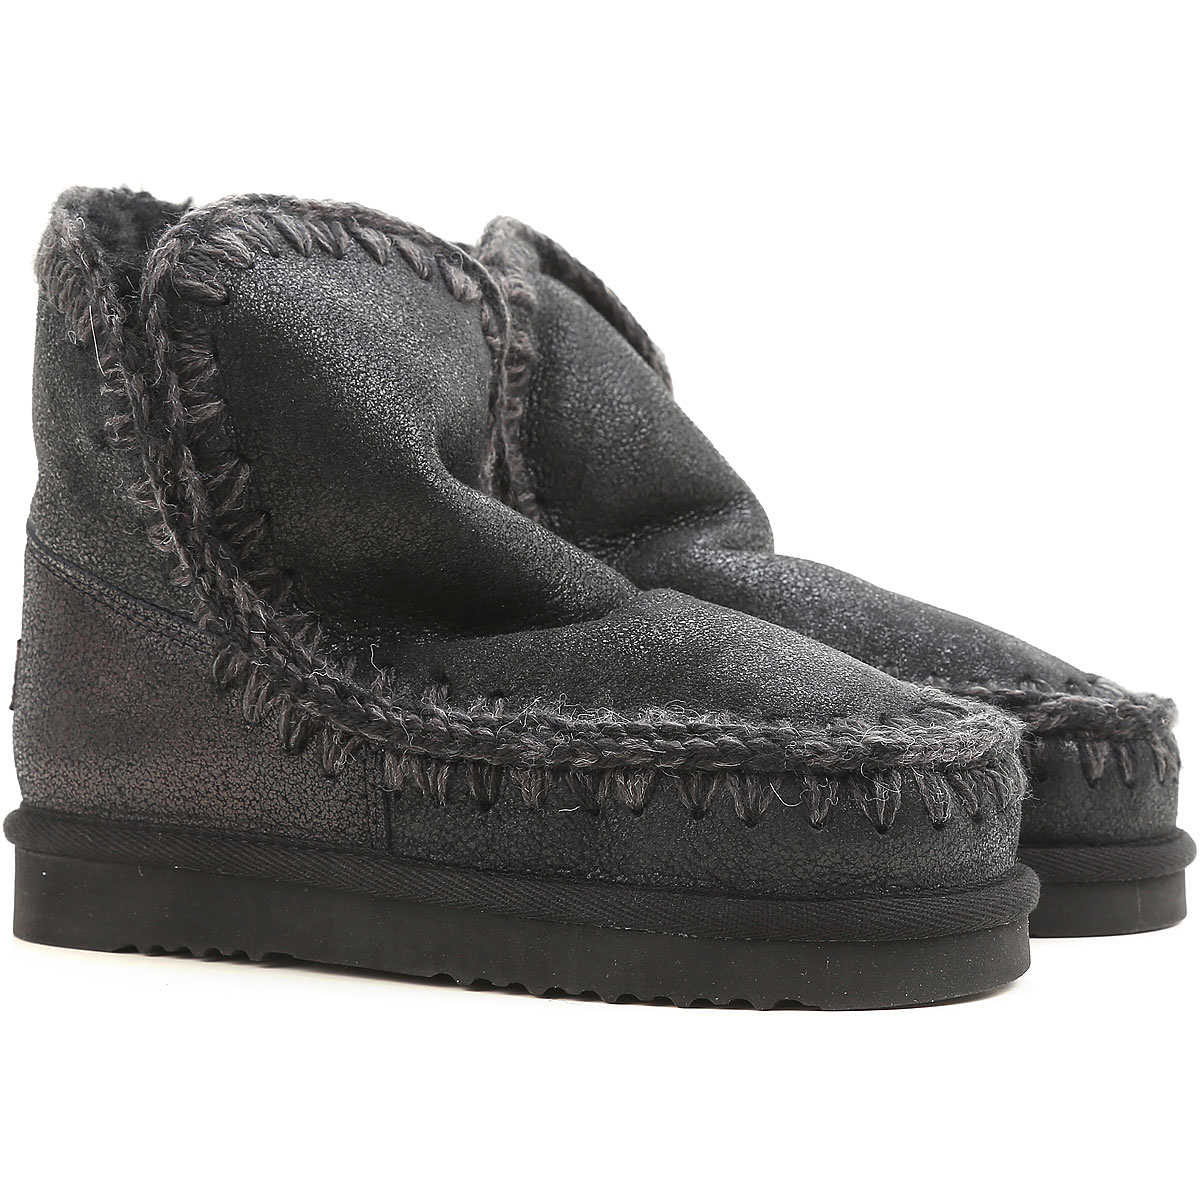 Mou Boots for Women Booties On Sale DK - GOOFASH - Womens BOOTS